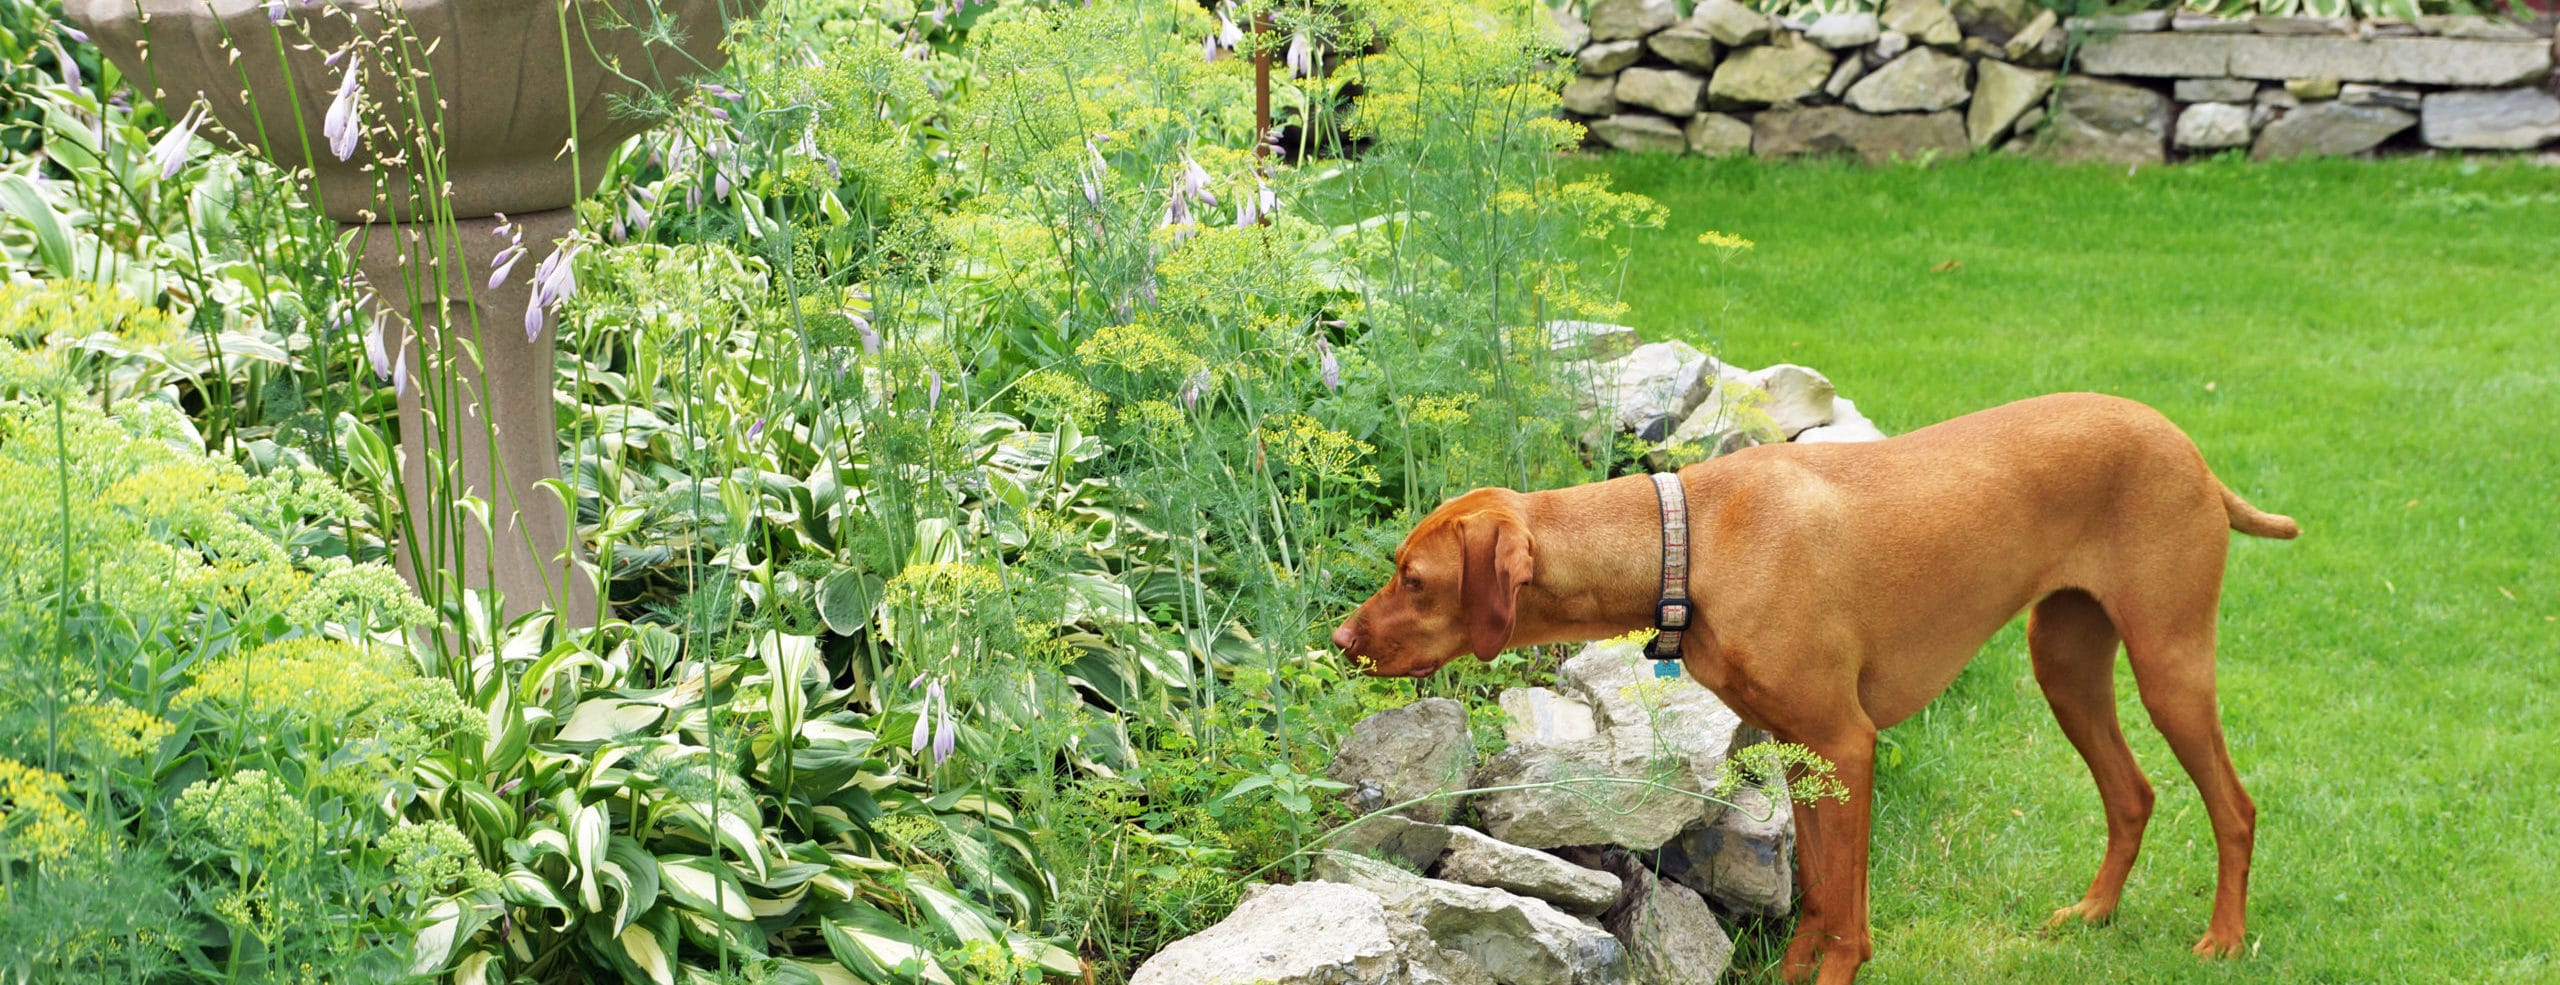 How to dogscape your yard